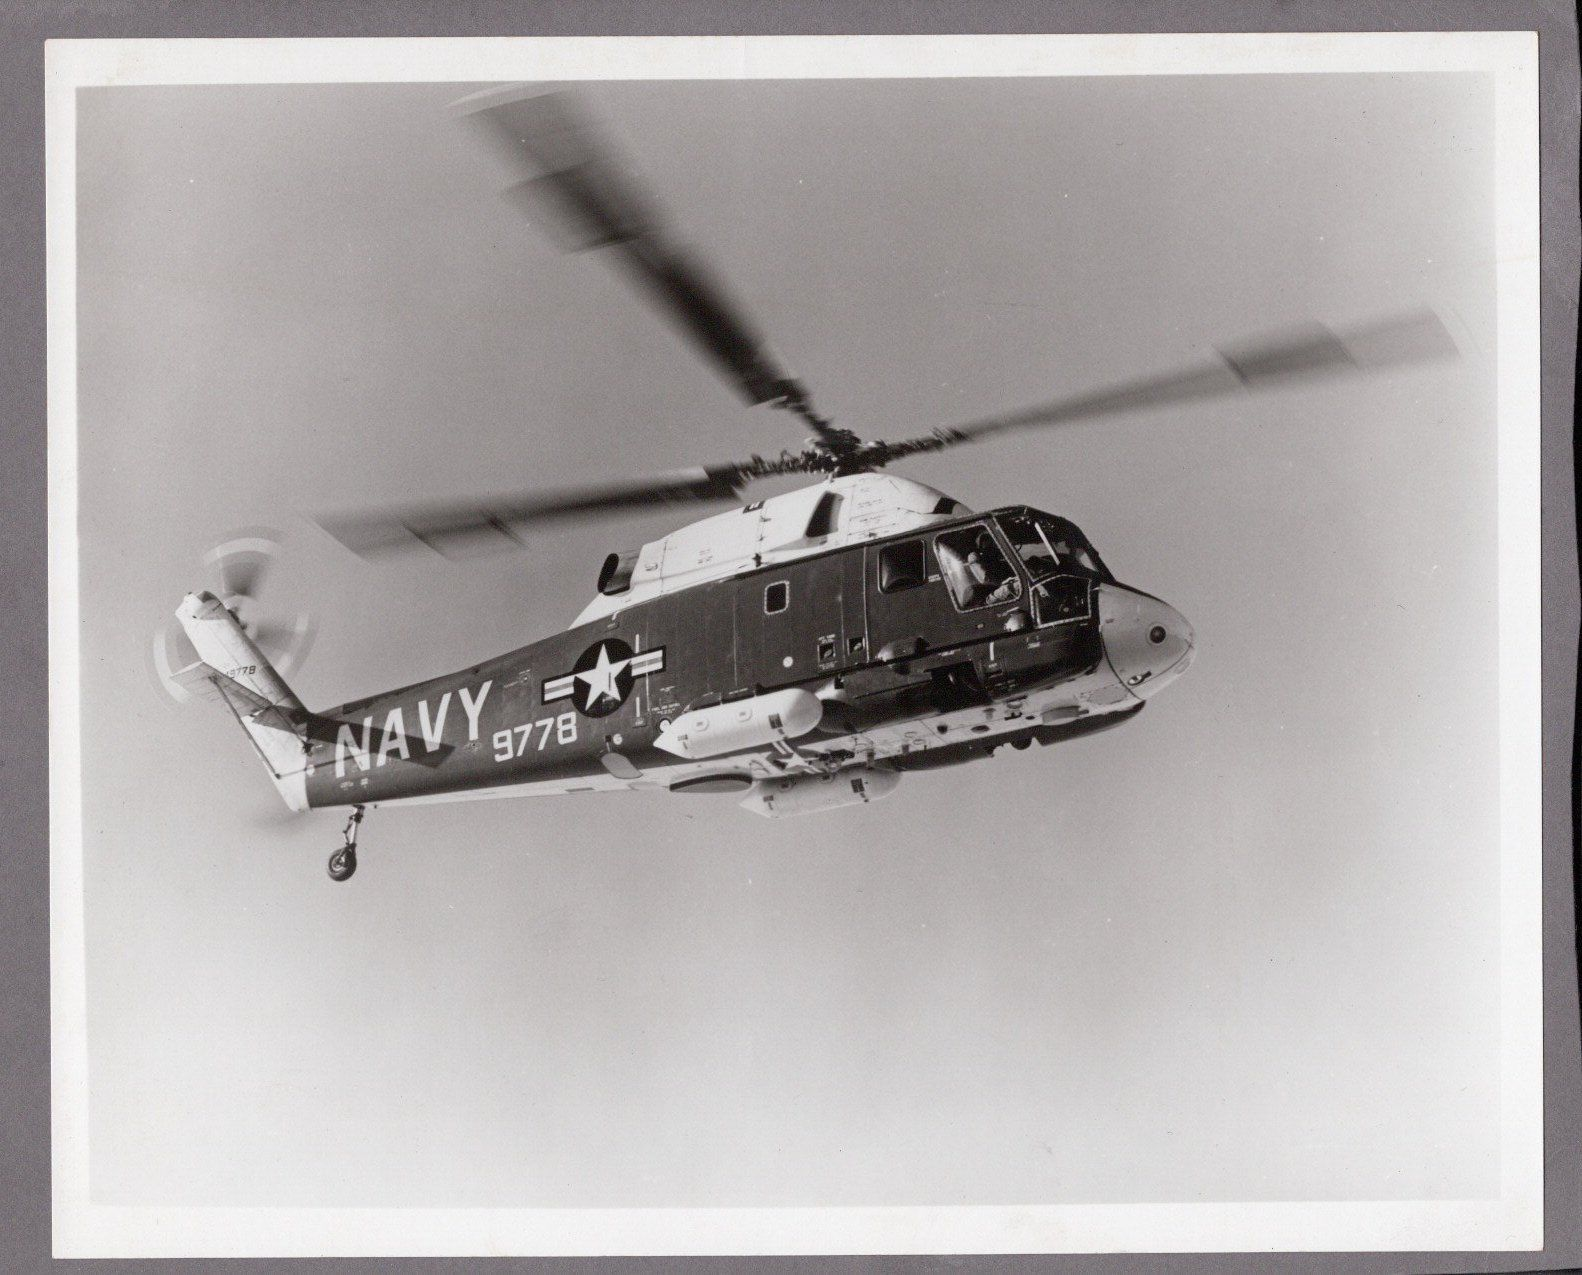 Kaman SH-2 Seasprite Helicopter Old Photo